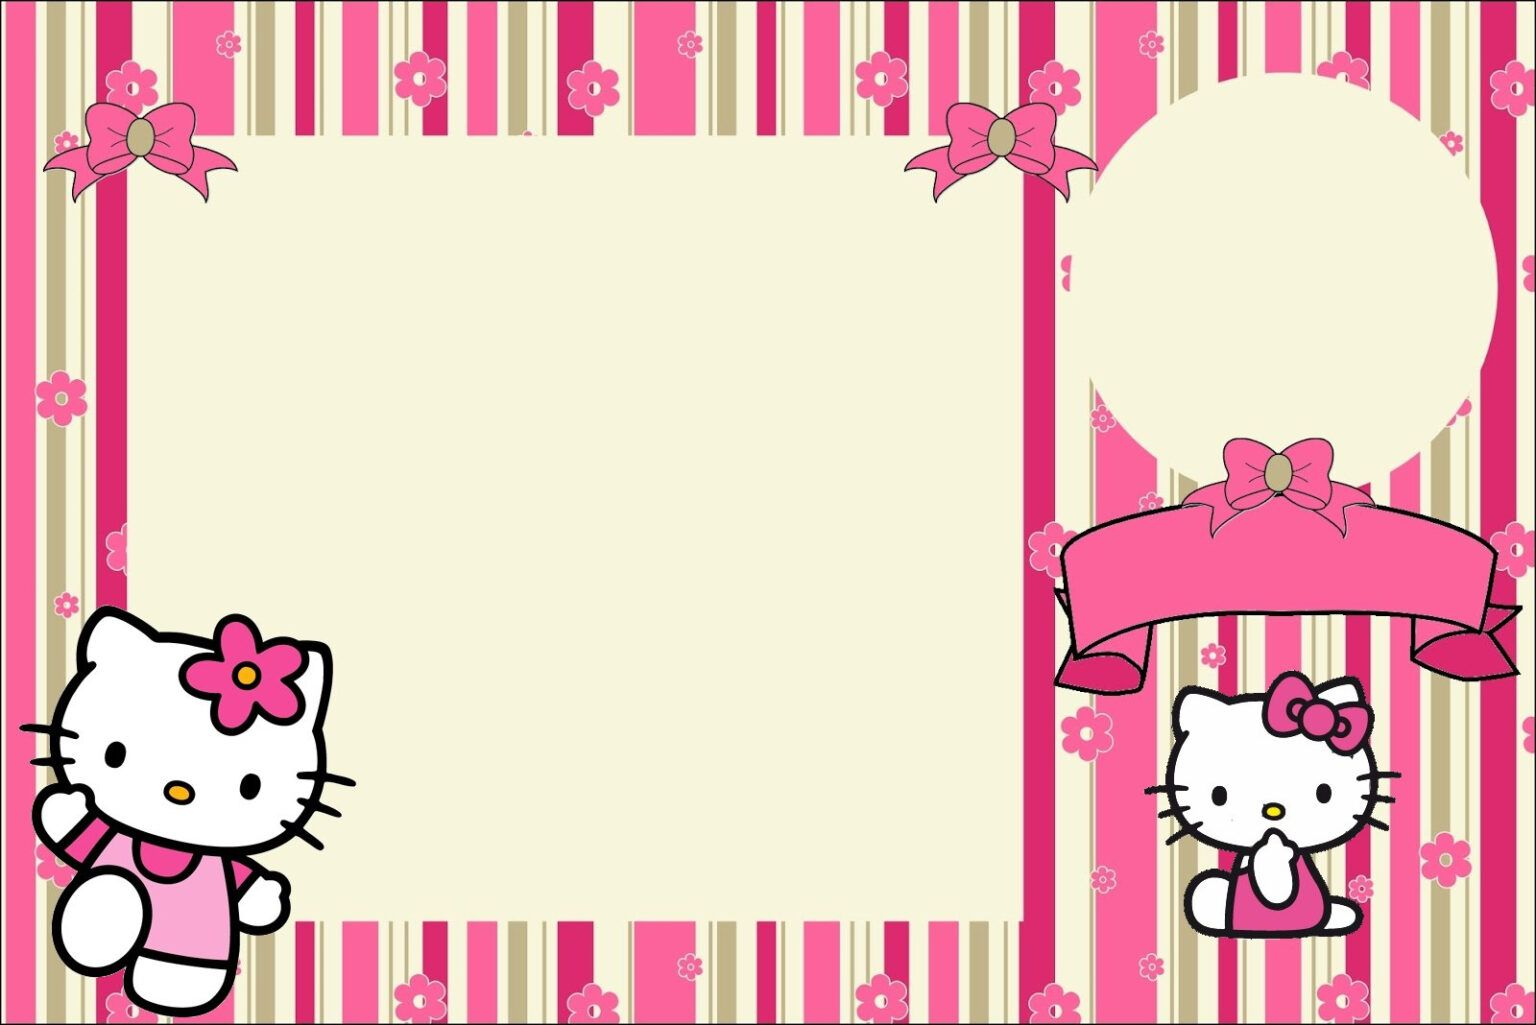 Sample Hello Kitty Invitation Template Design For Christening There Are Lots Of Unique And Creative Hello Kitty Invitations Diy Hello Kitty Hello Kitty Party